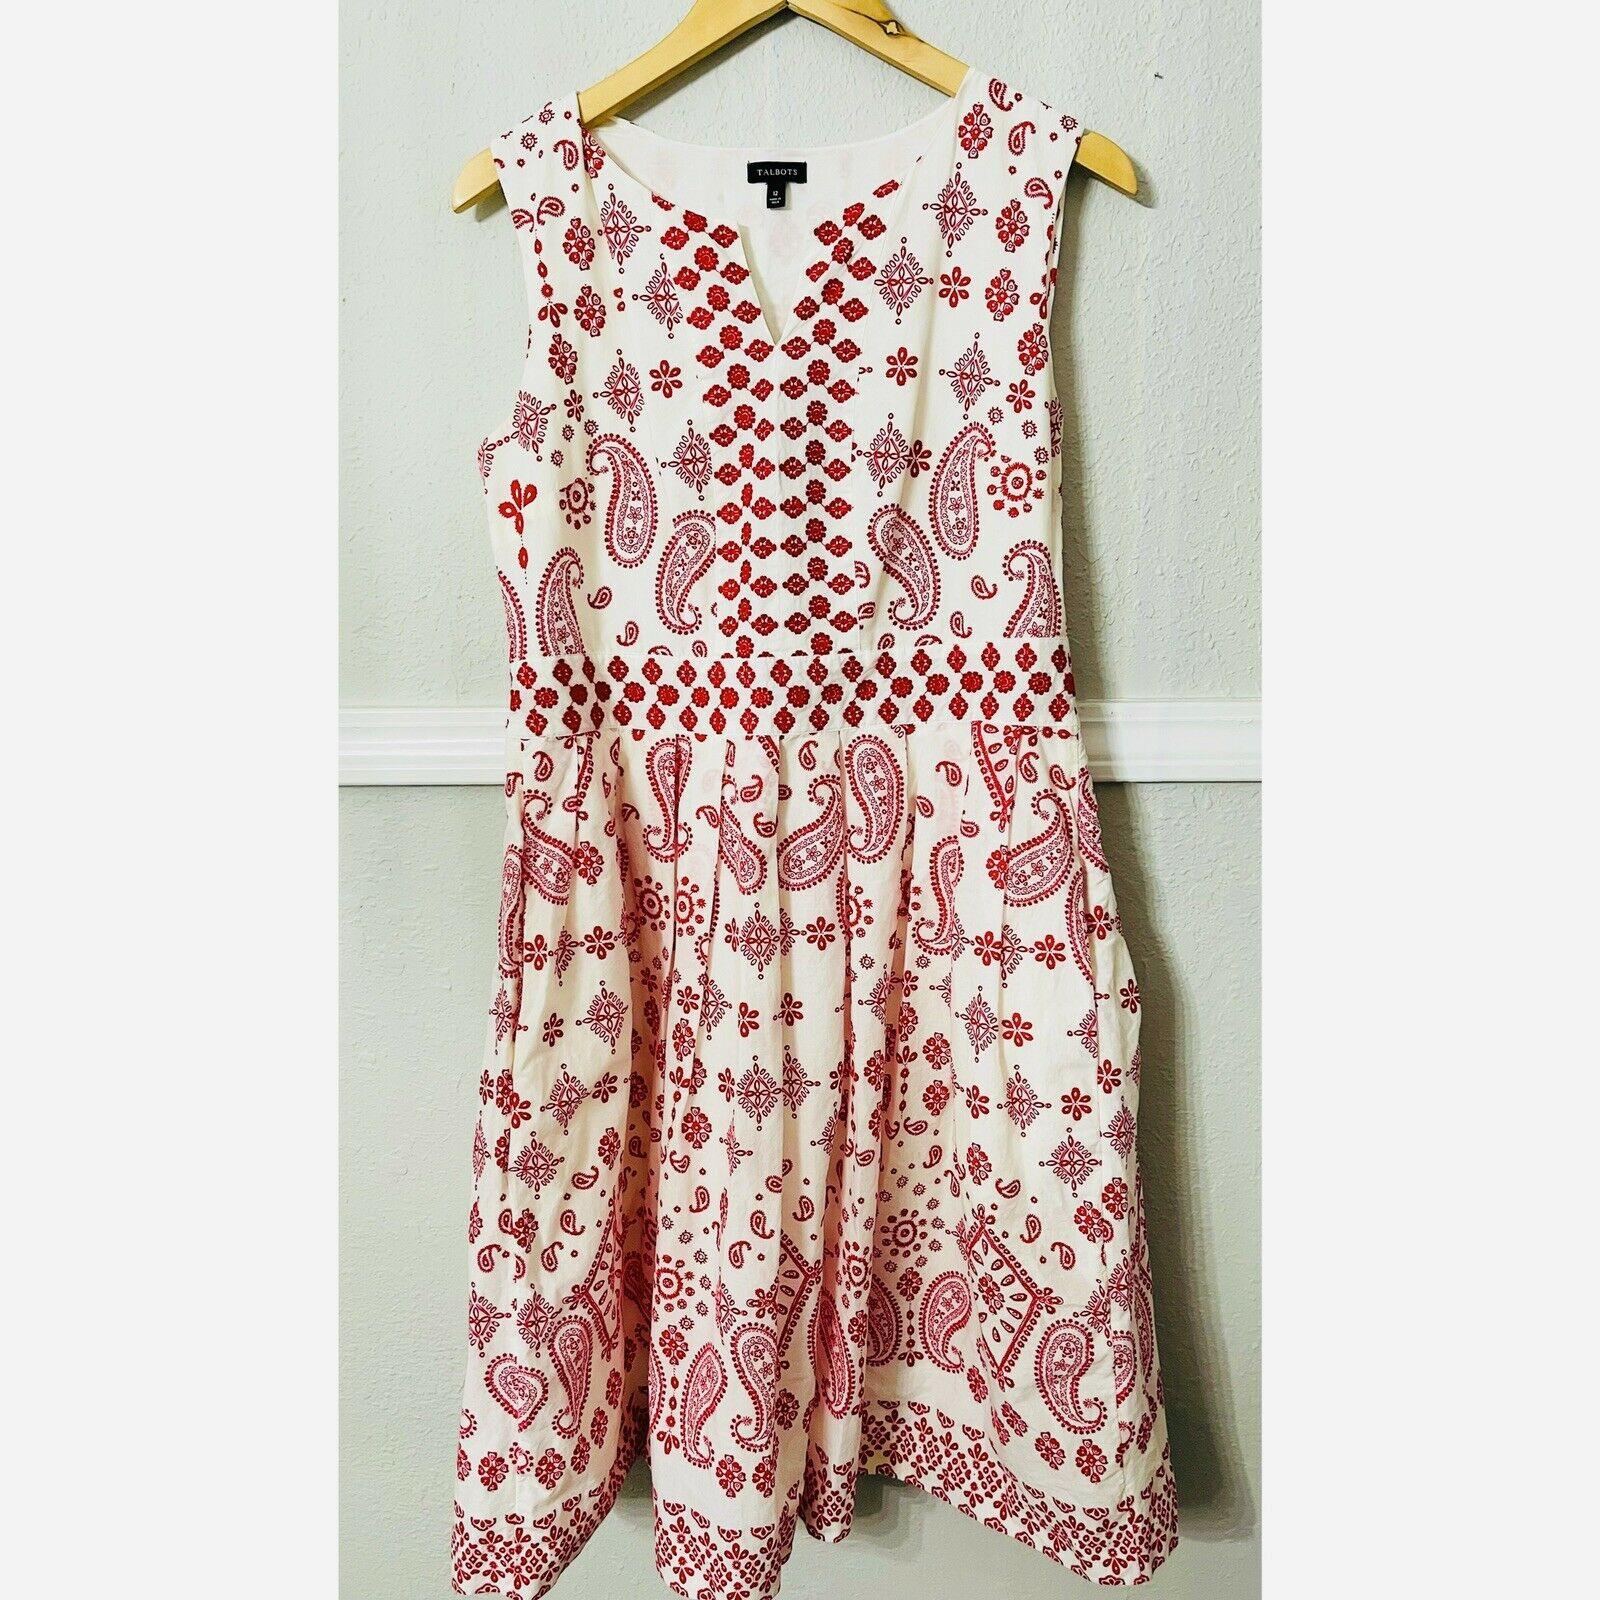 talbots embroidered dress - image 4